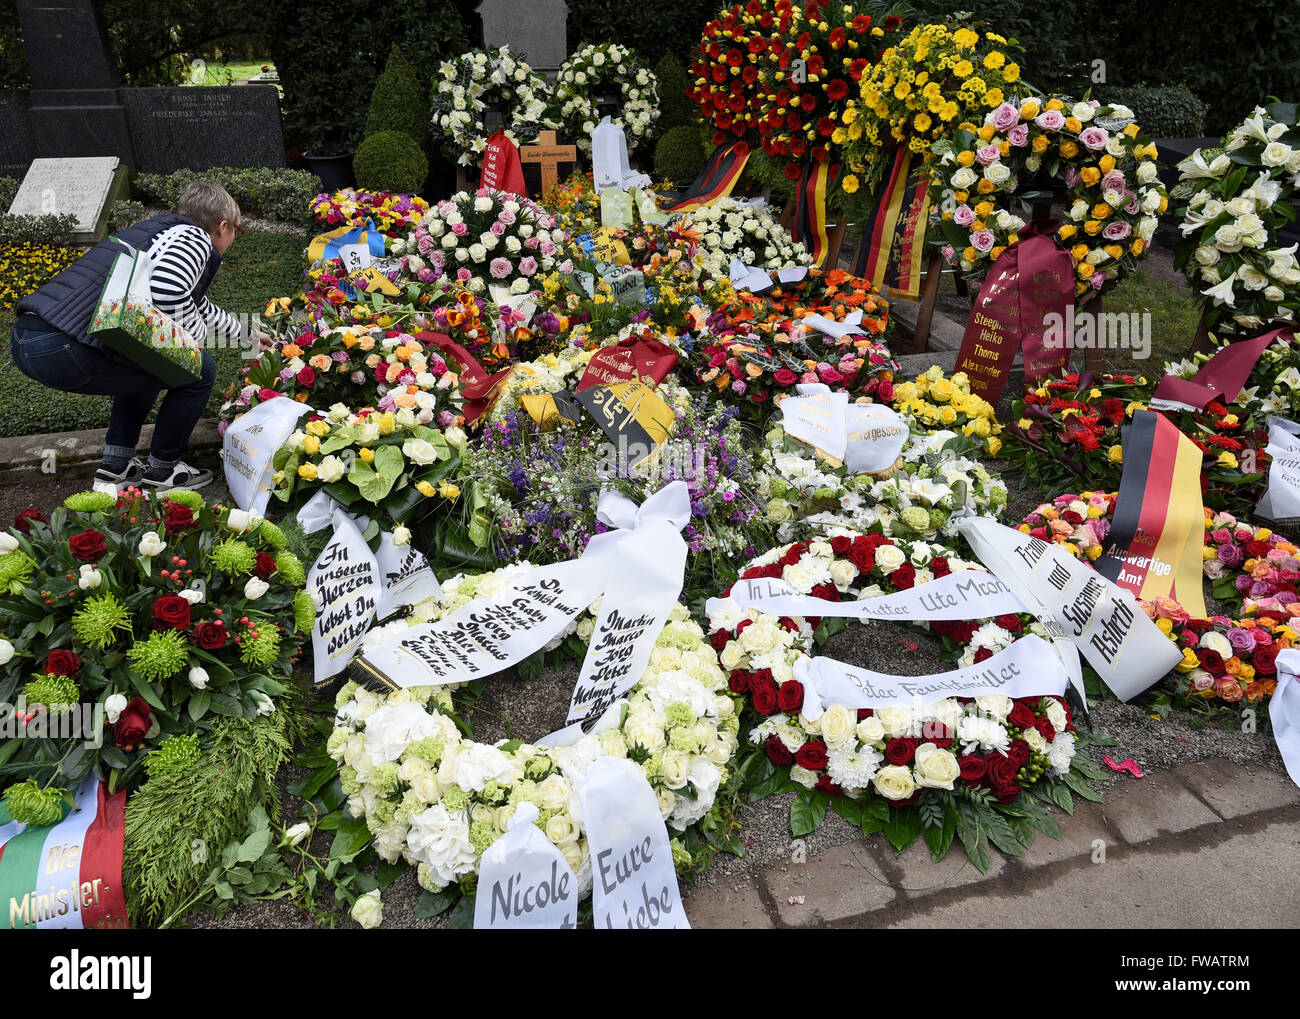 Funeral Flowers Wreaths Stock Photos Funeral Flowers Wreaths Stock